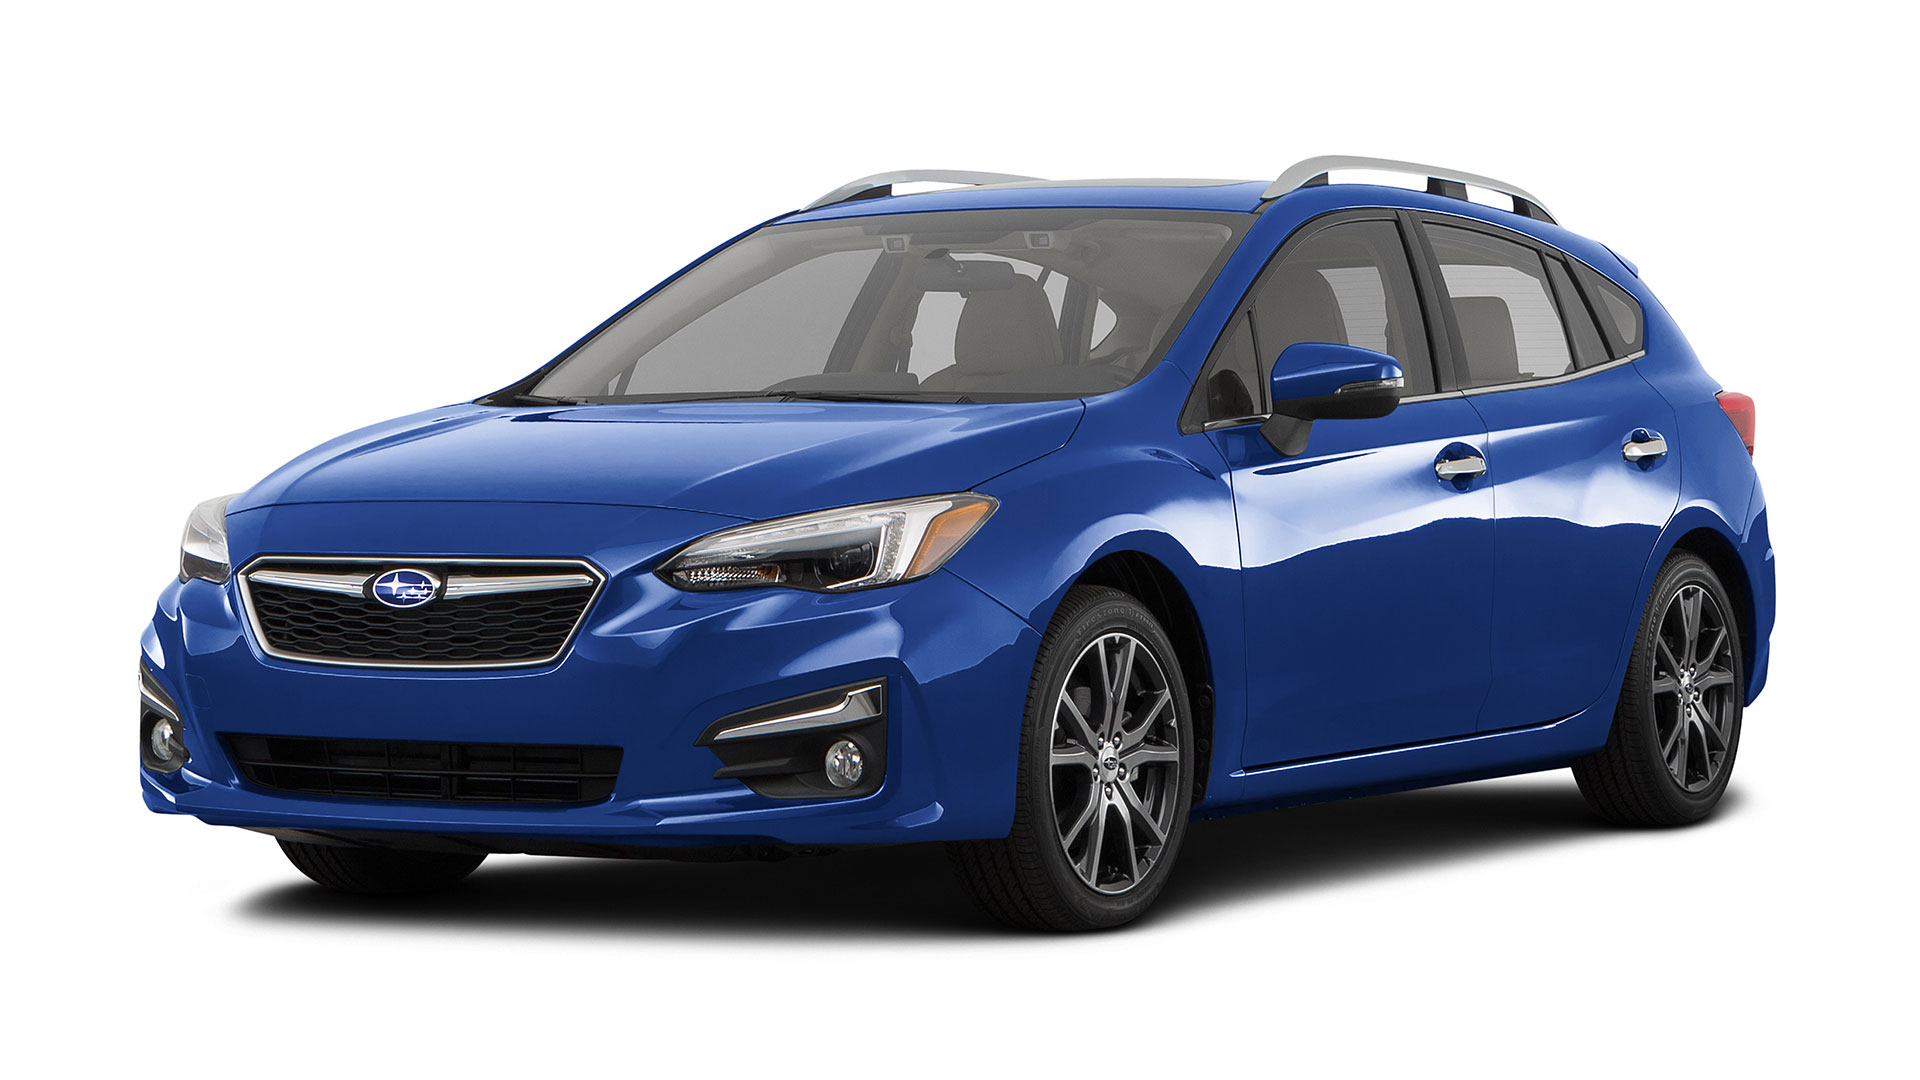 2017 Subaru Impreza 4 Door Wagon